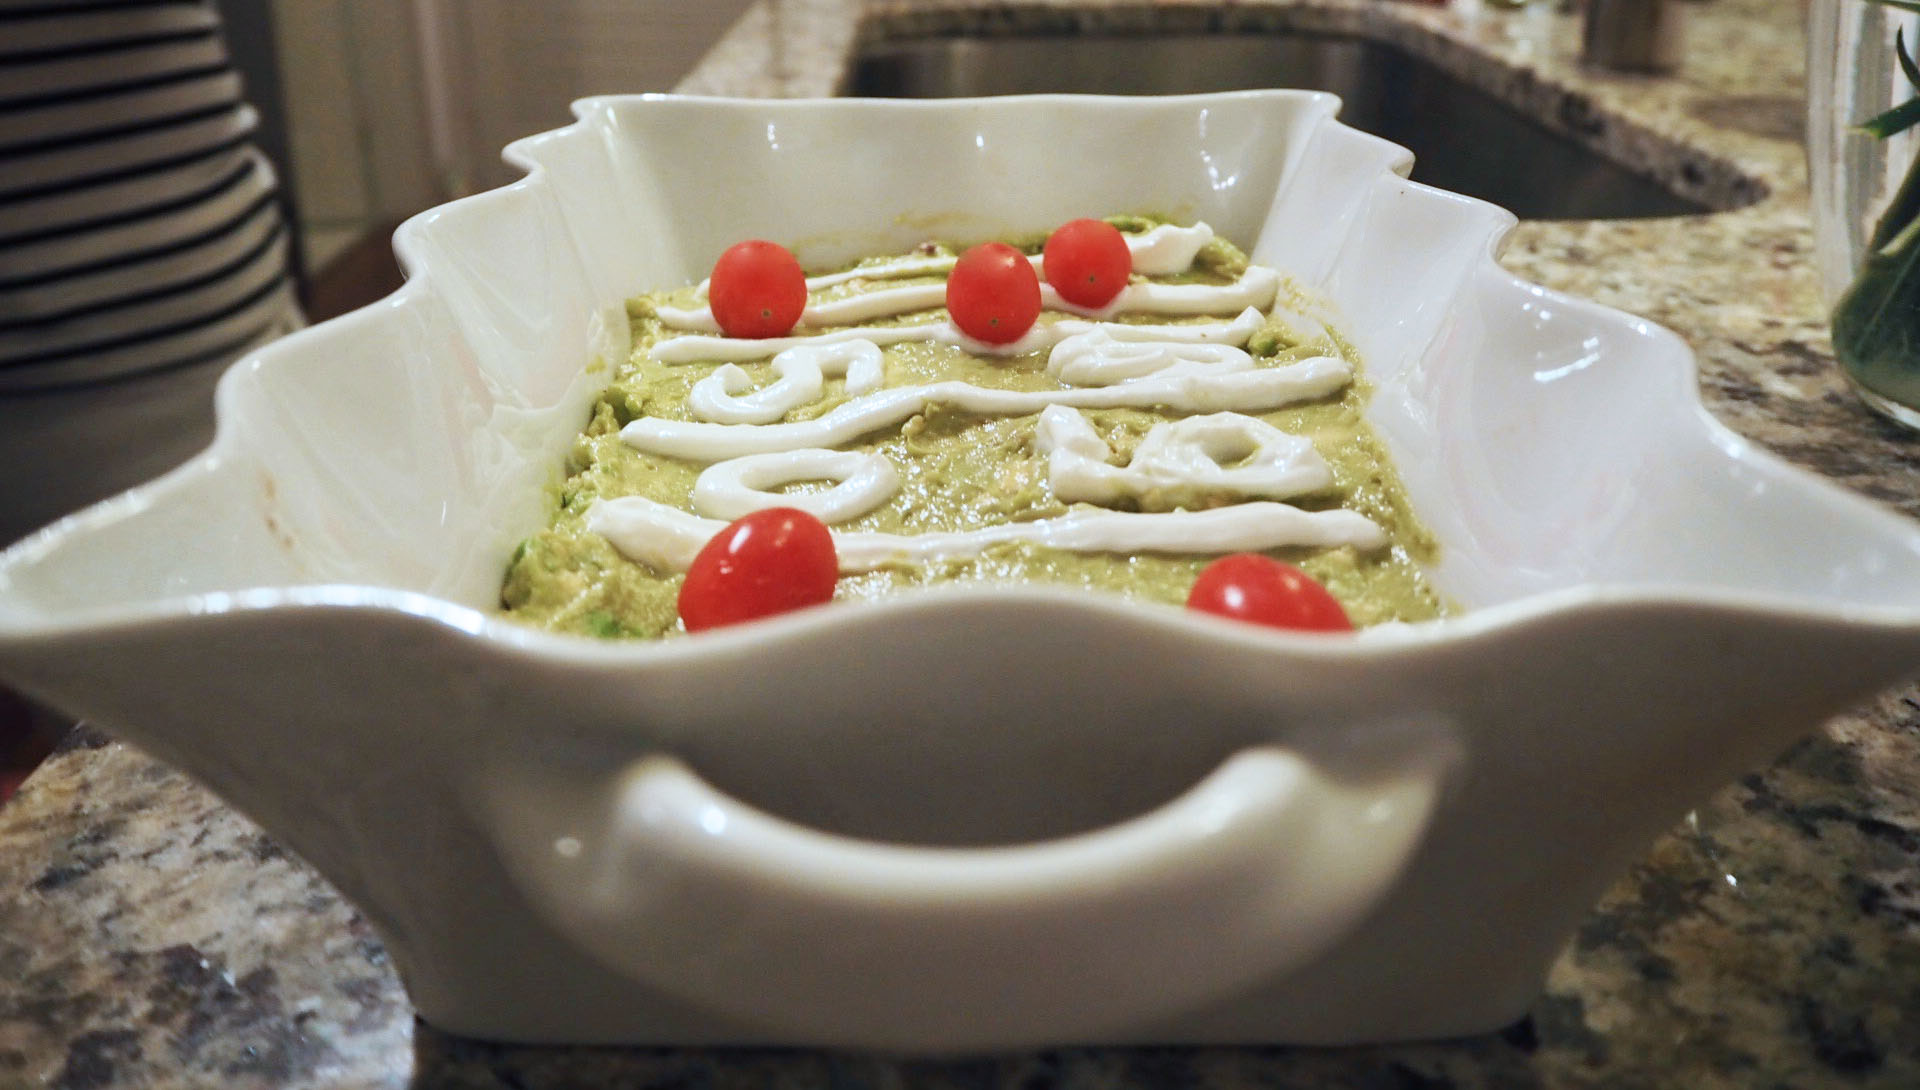 Skinny 6 Layer Super Bowl Dip